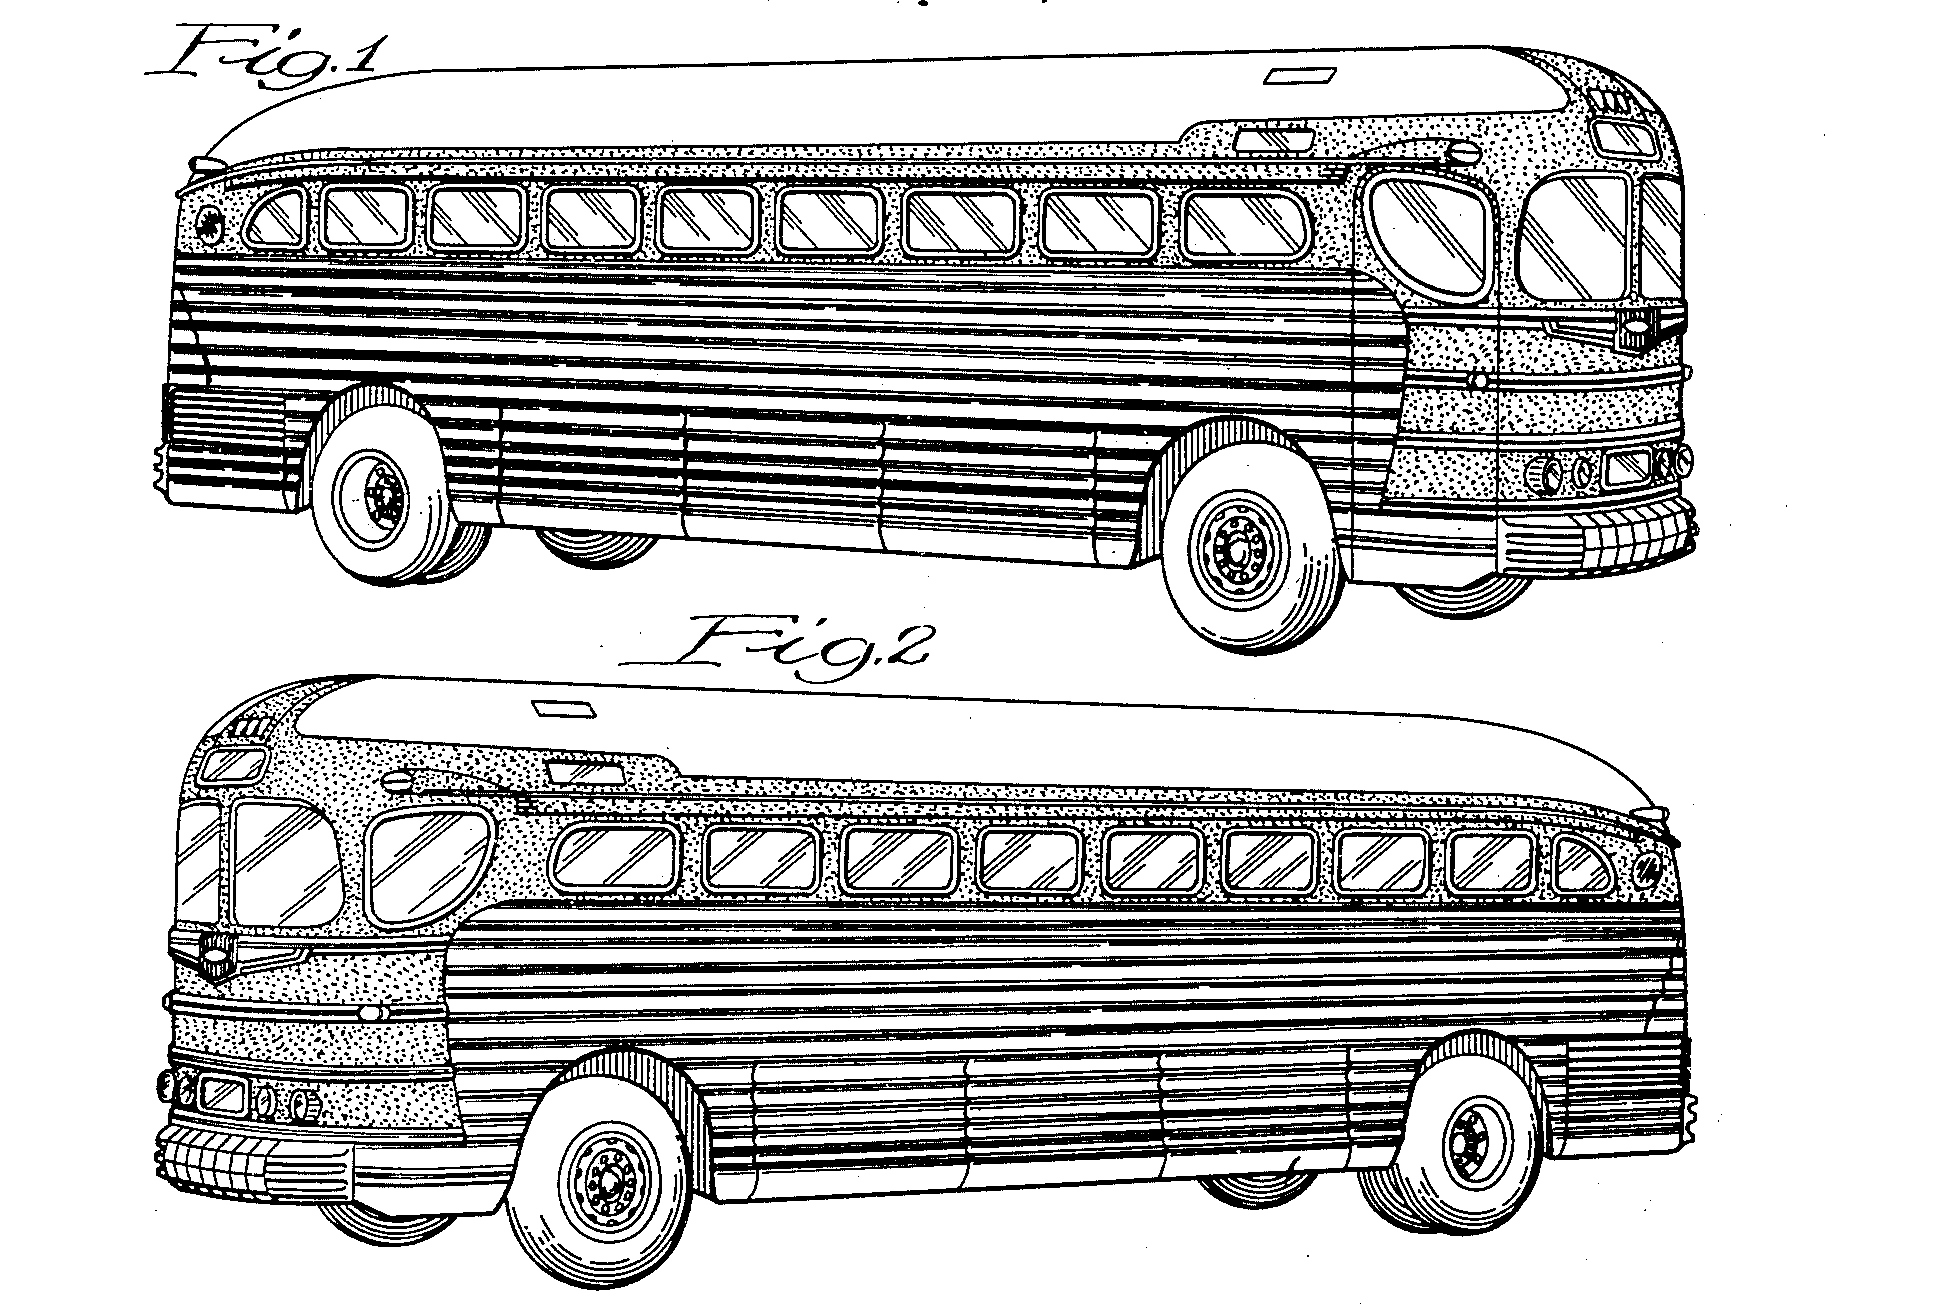 Greyhound Motor Coach, Raymond Lowey, for Greyhound Corporation, 1940/1941. Patent Number: USD 127,174, U.S. Patent Office - from Patented